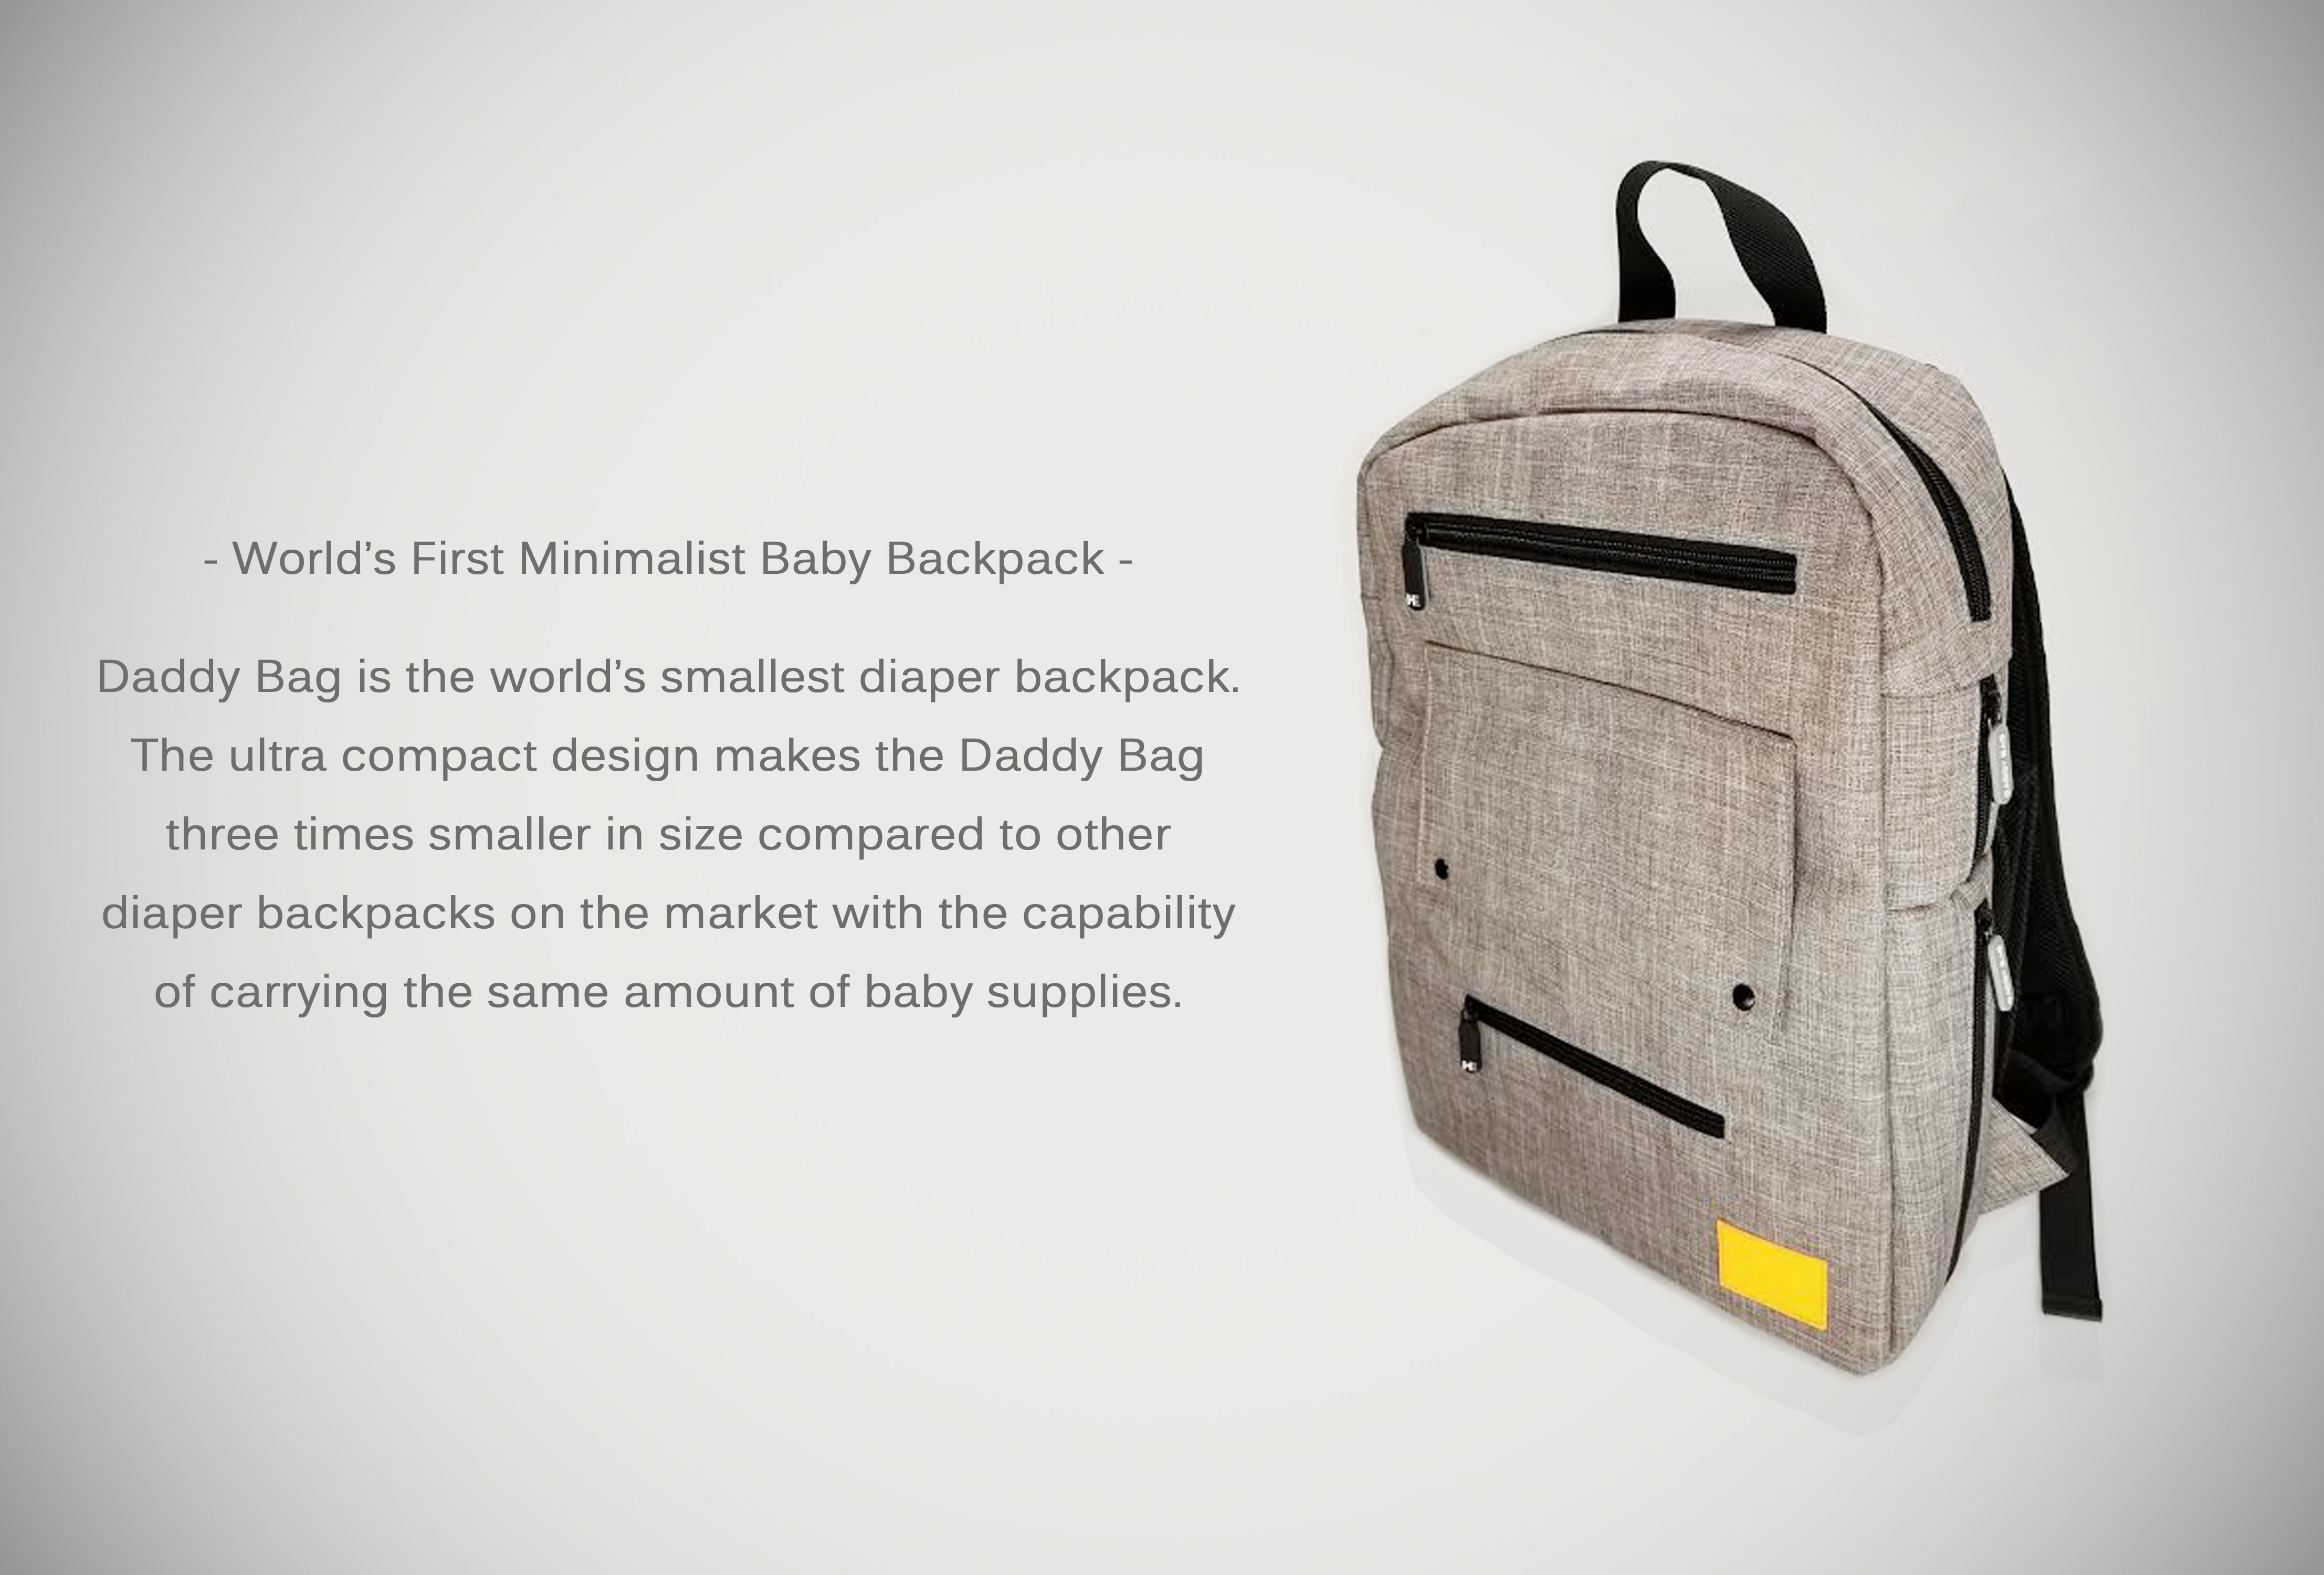 8003b11fc3330f the Daddy Bag. The Worlds First Minimalist Diaper Backpack! www.  HanaEveryday.com. Available on Kickstarter starting October 20th, 2017!